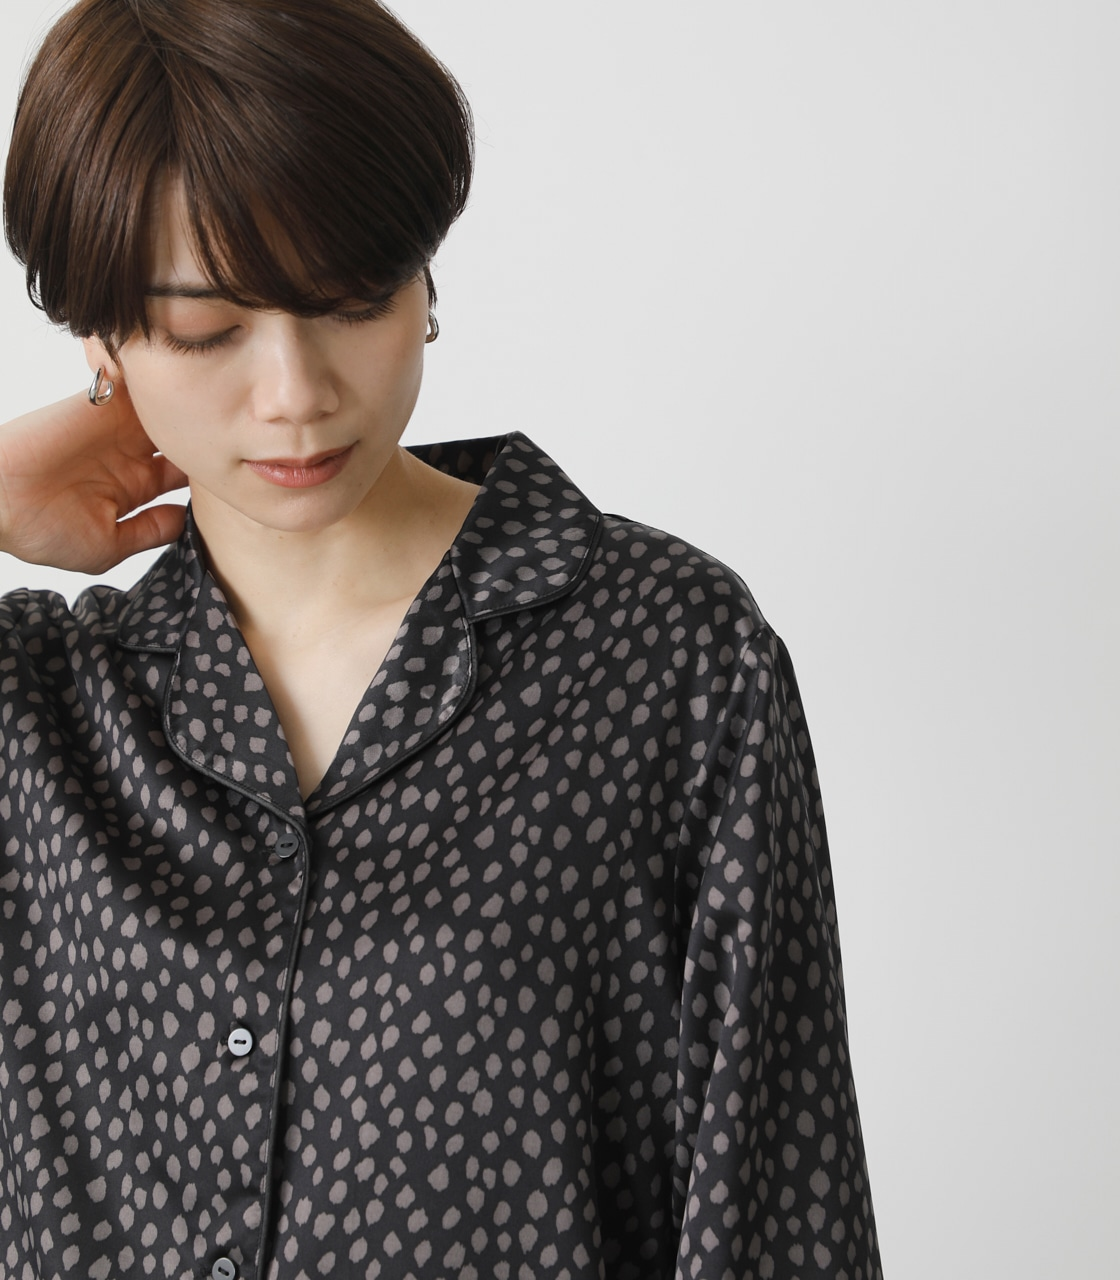 T/H SATIN L/S PAJAMAS/T/Hサテンロングスリーブパジャマ 詳細画像 柄BLK 4